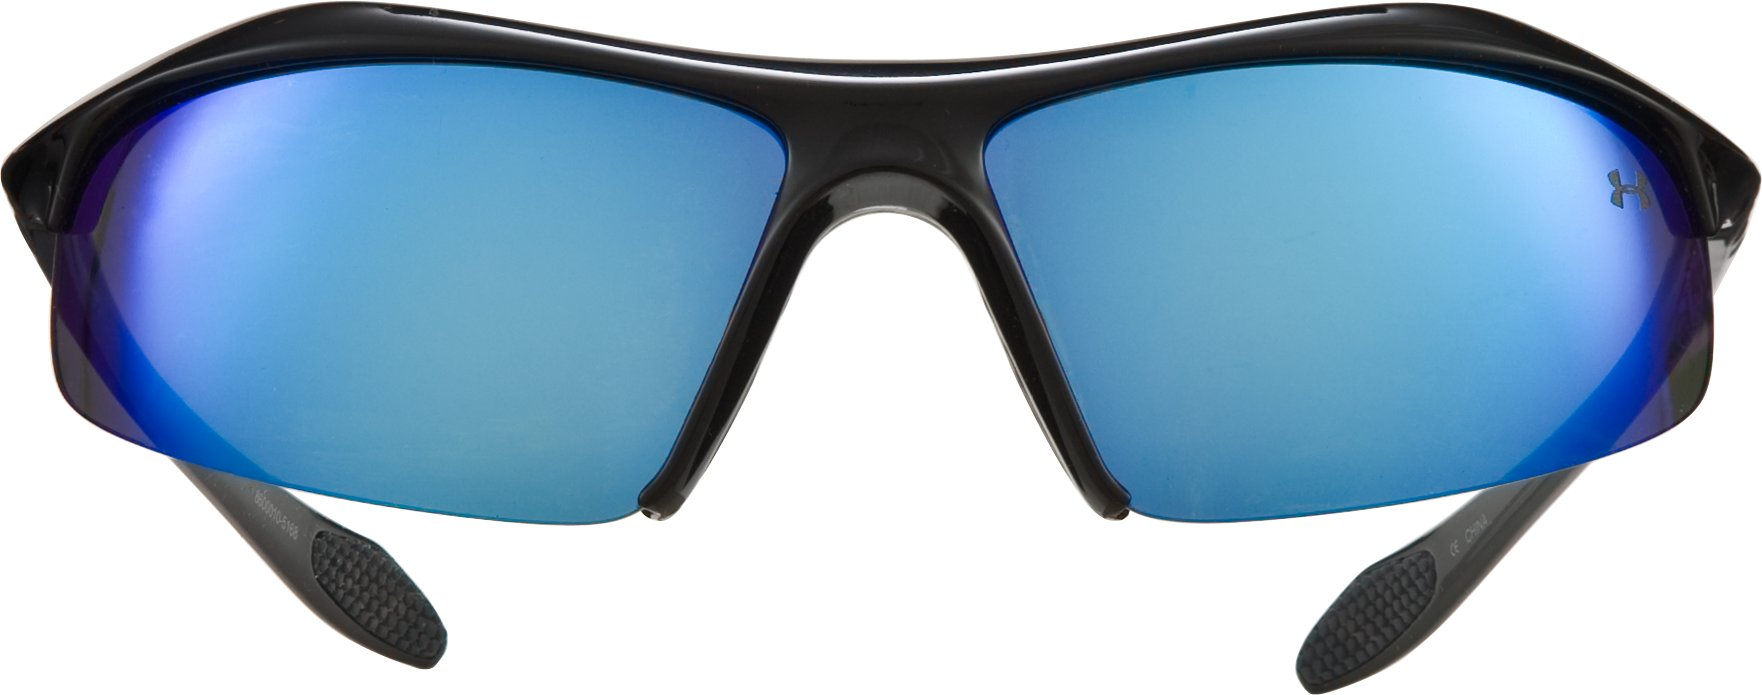 UA Zone Polarized Blue Mirror Sunglasses, Shiny Black